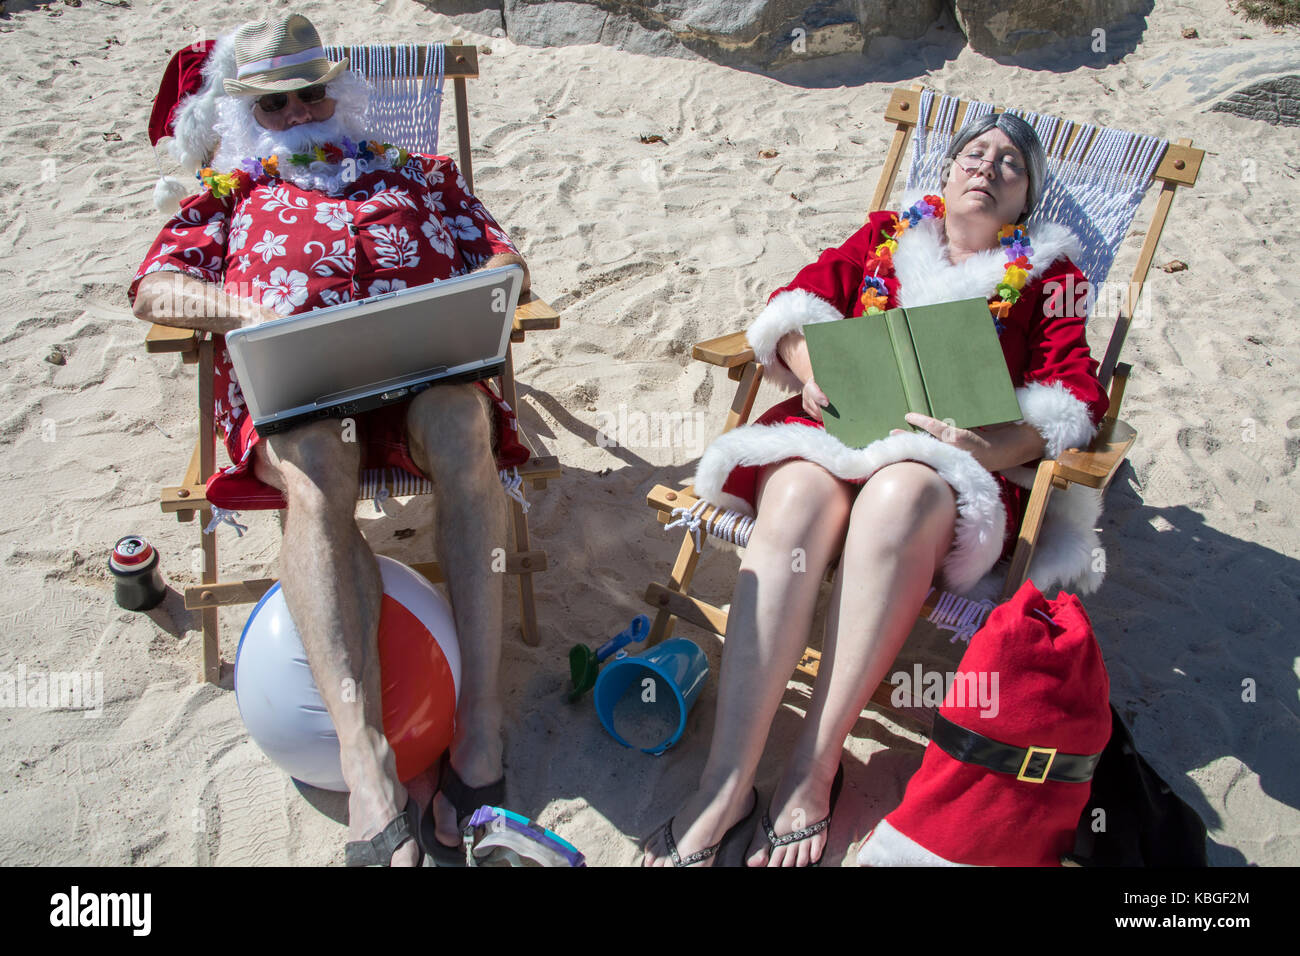 90019162 Santa Claus in red swimming trunks and Hawaiian shirt lounging on sandy  beach using laptop computer with Mrs Claus napping with a book.